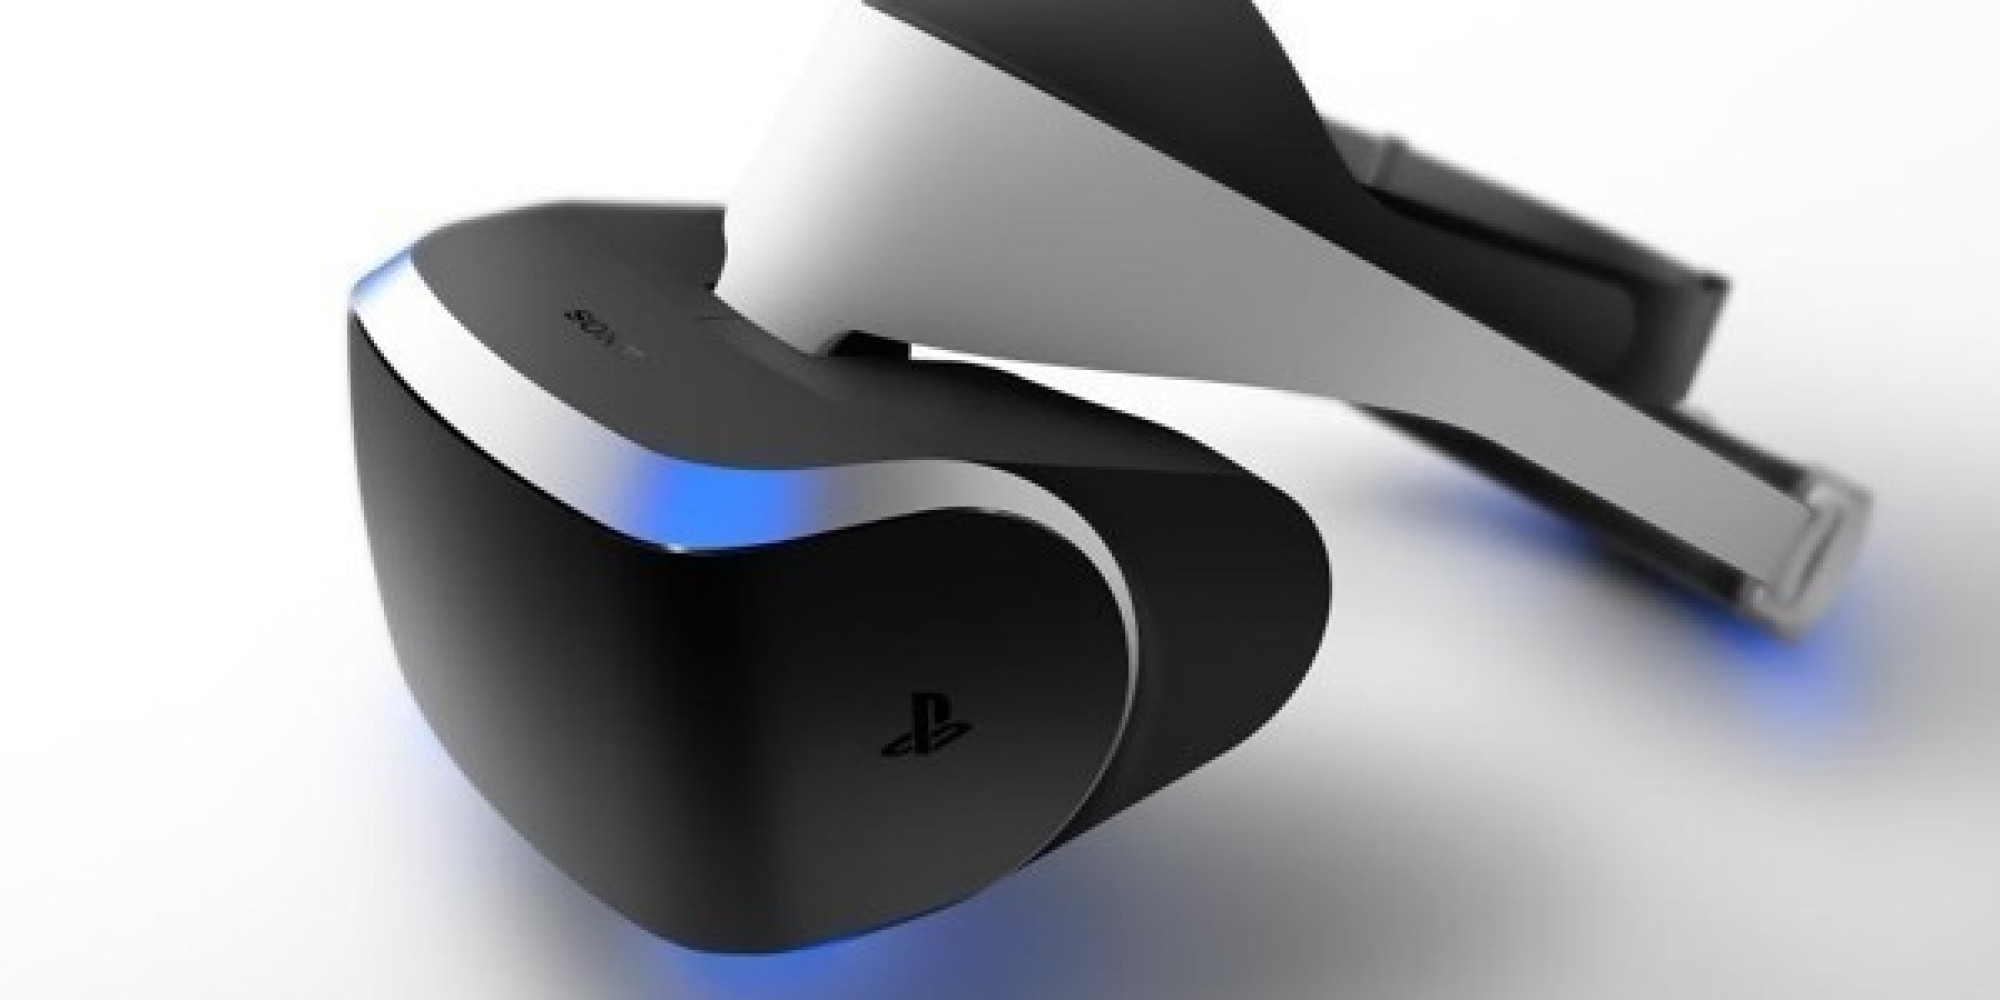 playstation vr sony pr sente un casque de r alit virtuelle pour ps4. Black Bedroom Furniture Sets. Home Design Ideas